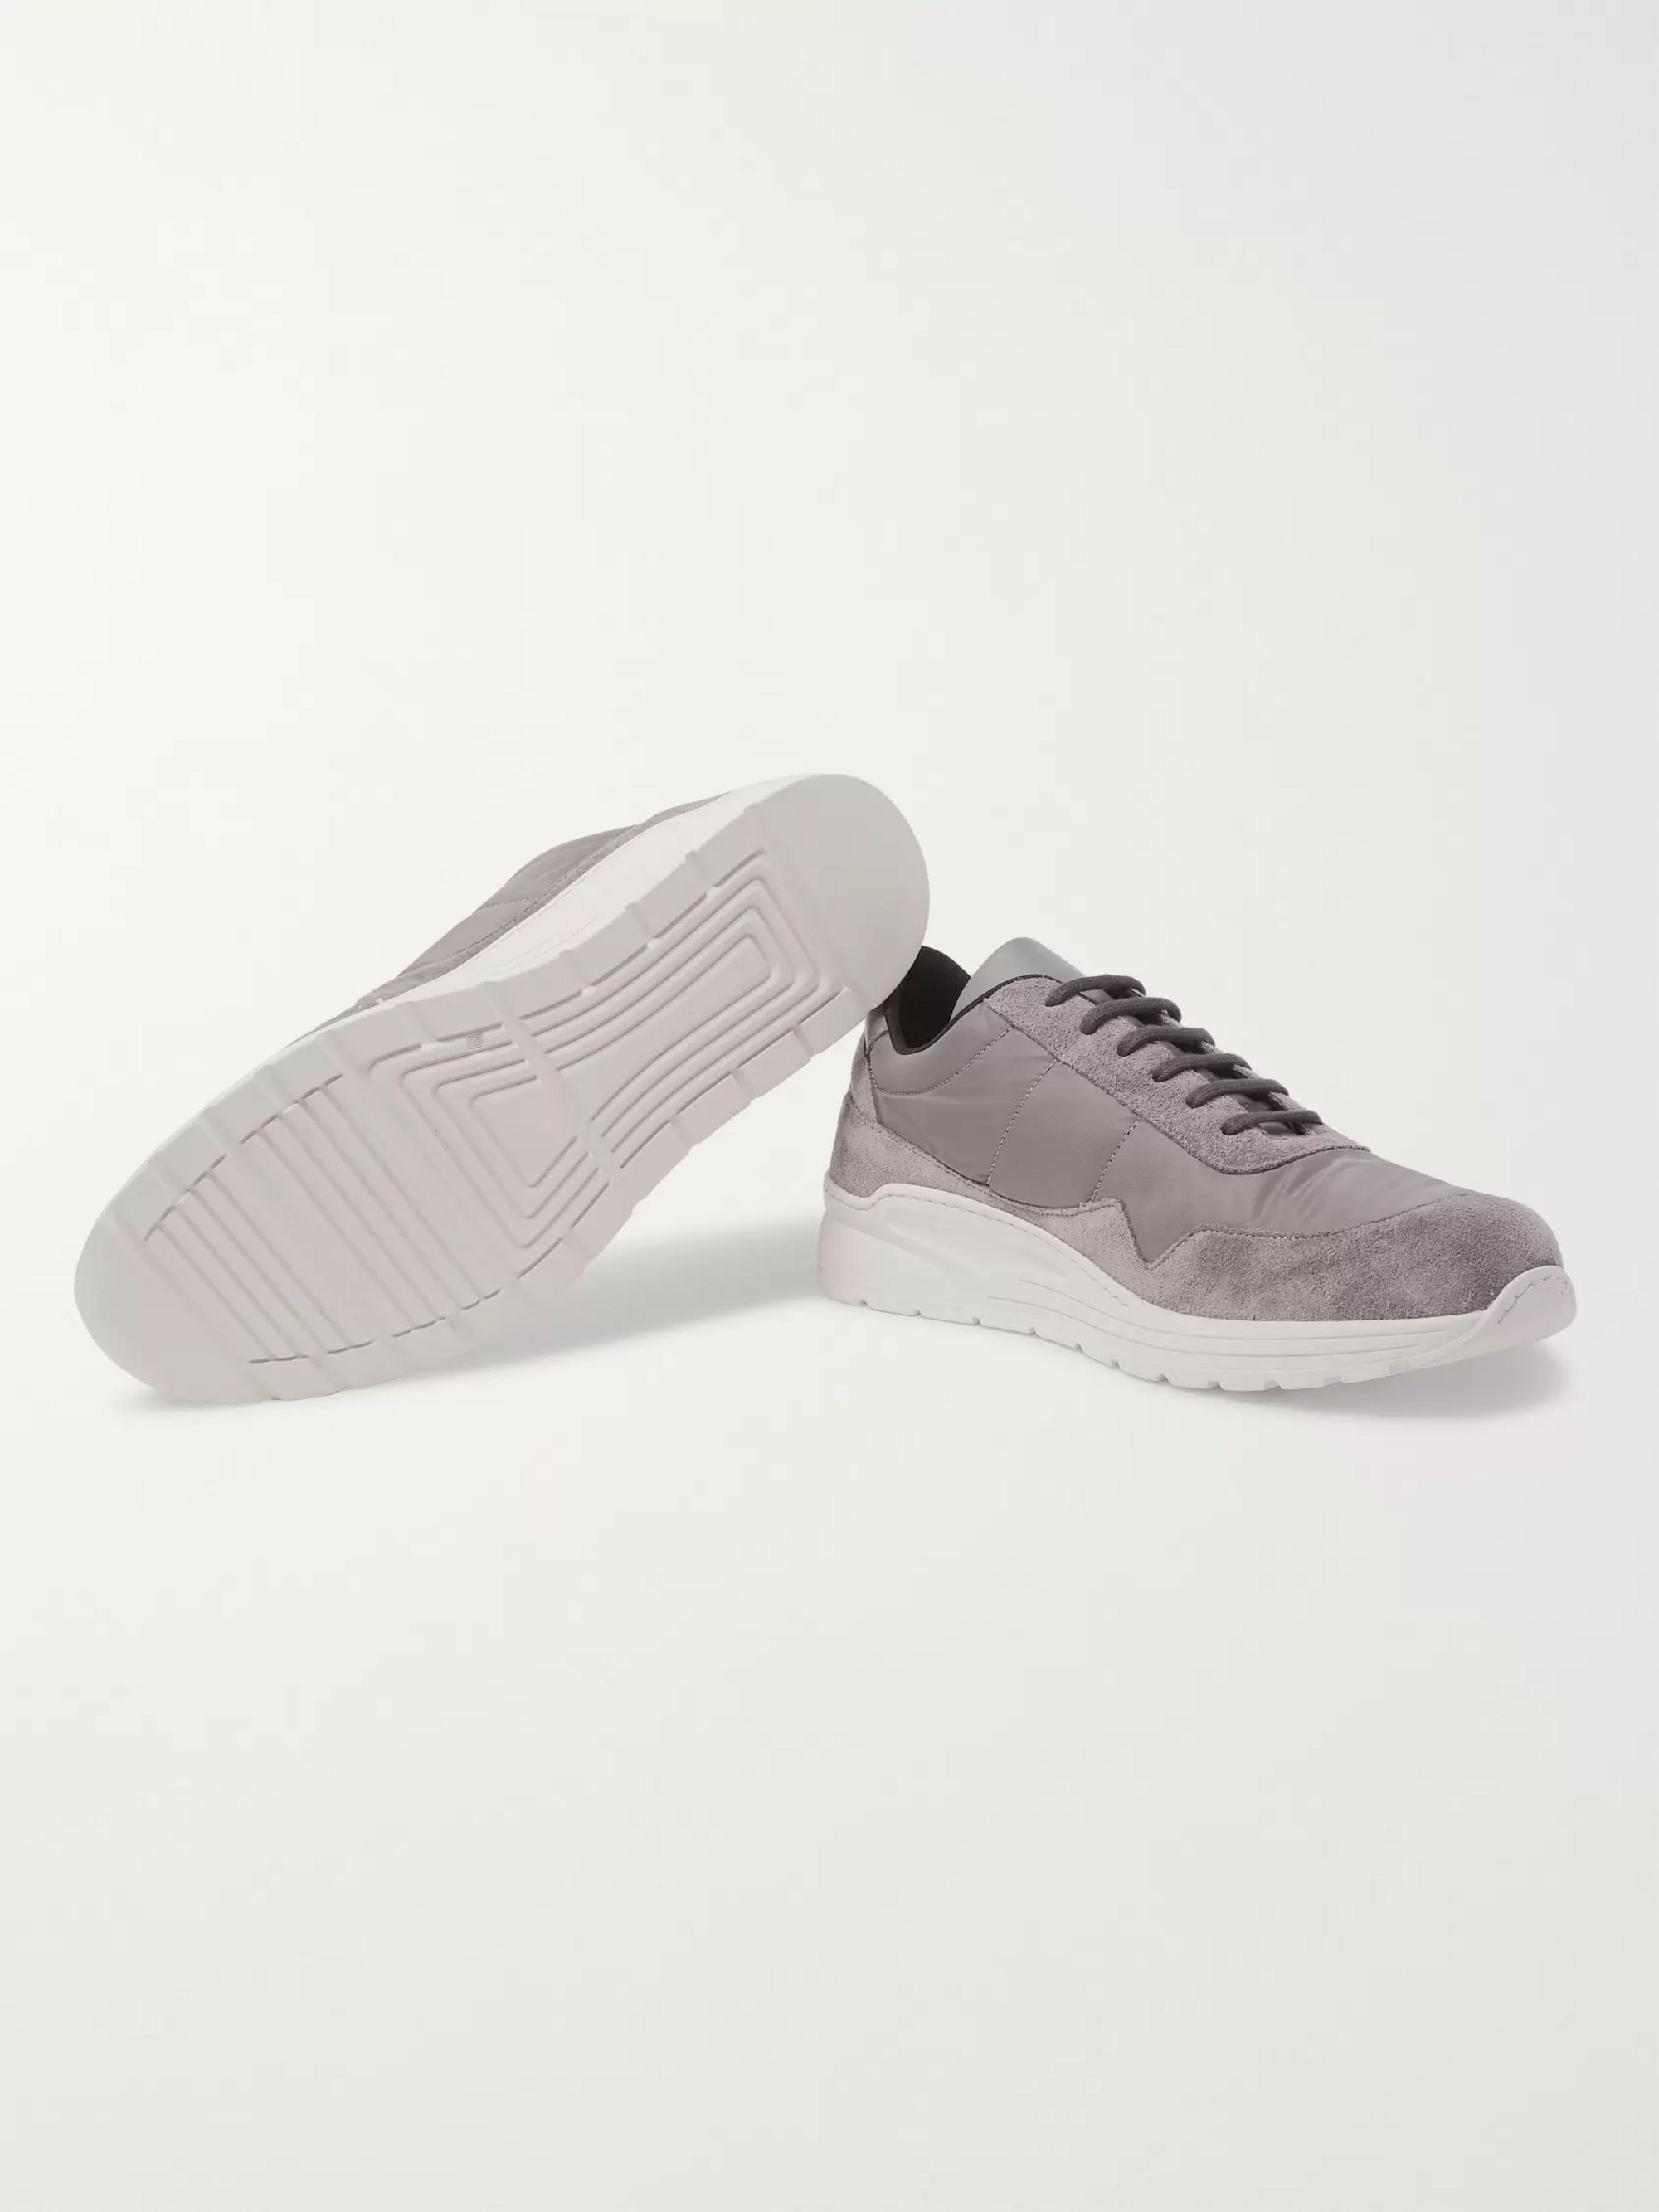 Common Projects Cross Trainer Suede, Nylon and Leather Sneakers